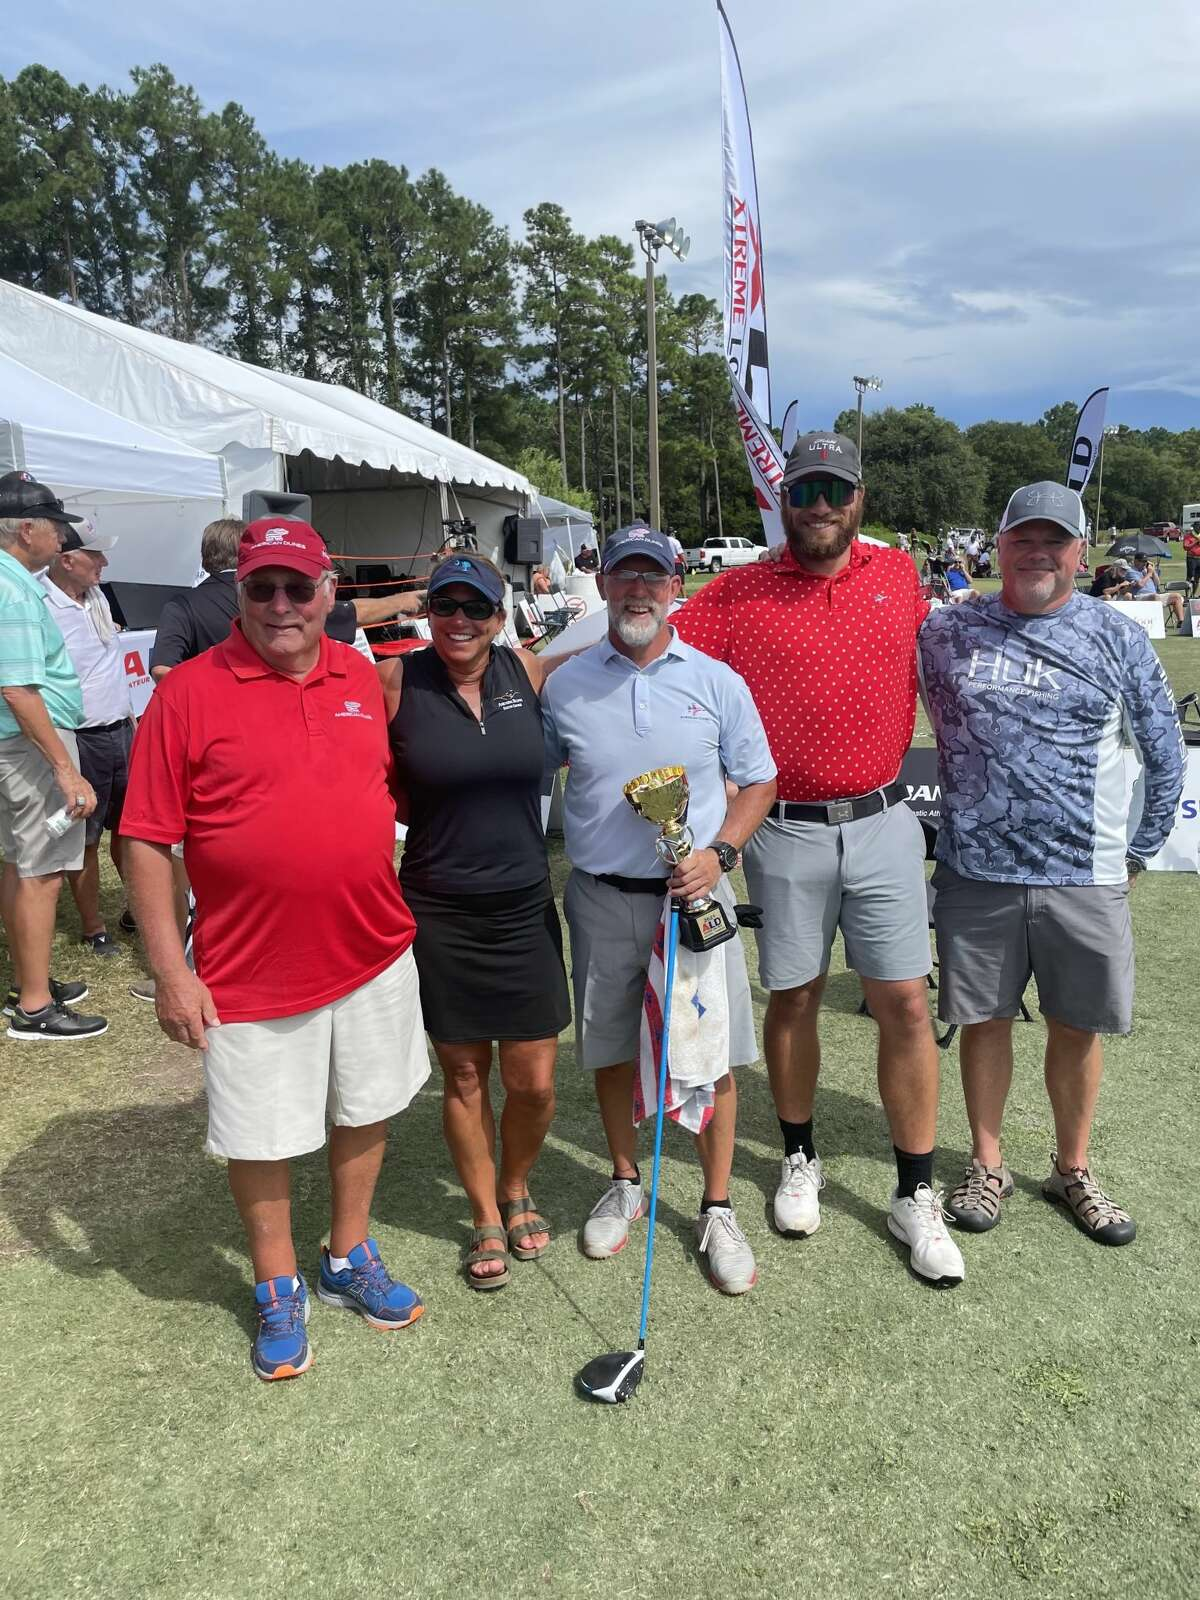 Left to right: Paul Ross, Bethany Merrill, Eric Ross, Reilly Merrill, and Tony Merrill all celebrate Reilly's fifth place finish at the Amateur Long Drive Nationals.